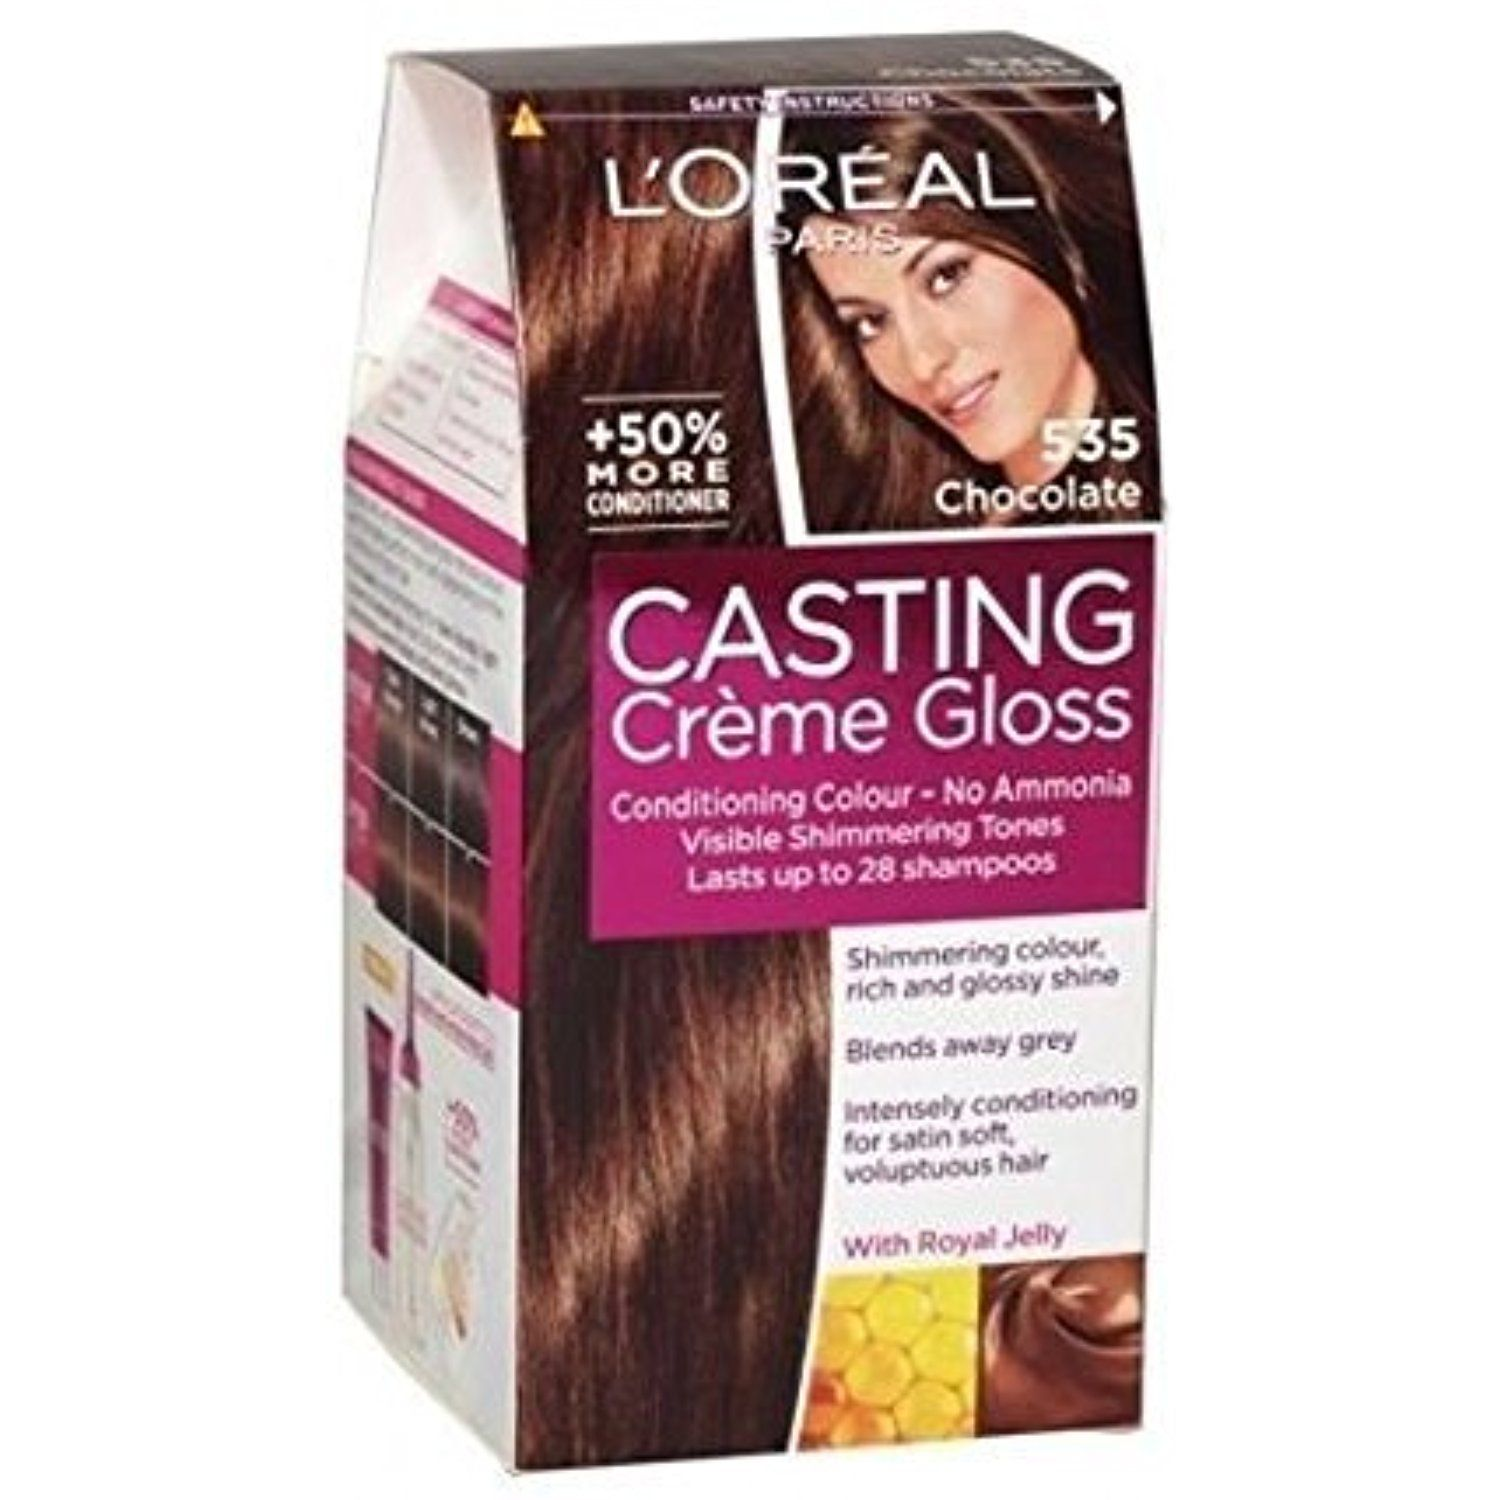 L Oreal Paris Casting Cra Me 535 Gloss Chocolate To View Further For This Item Visit The Image Link This Loreal Paris Loreal Casting Creme Gloss Loreal